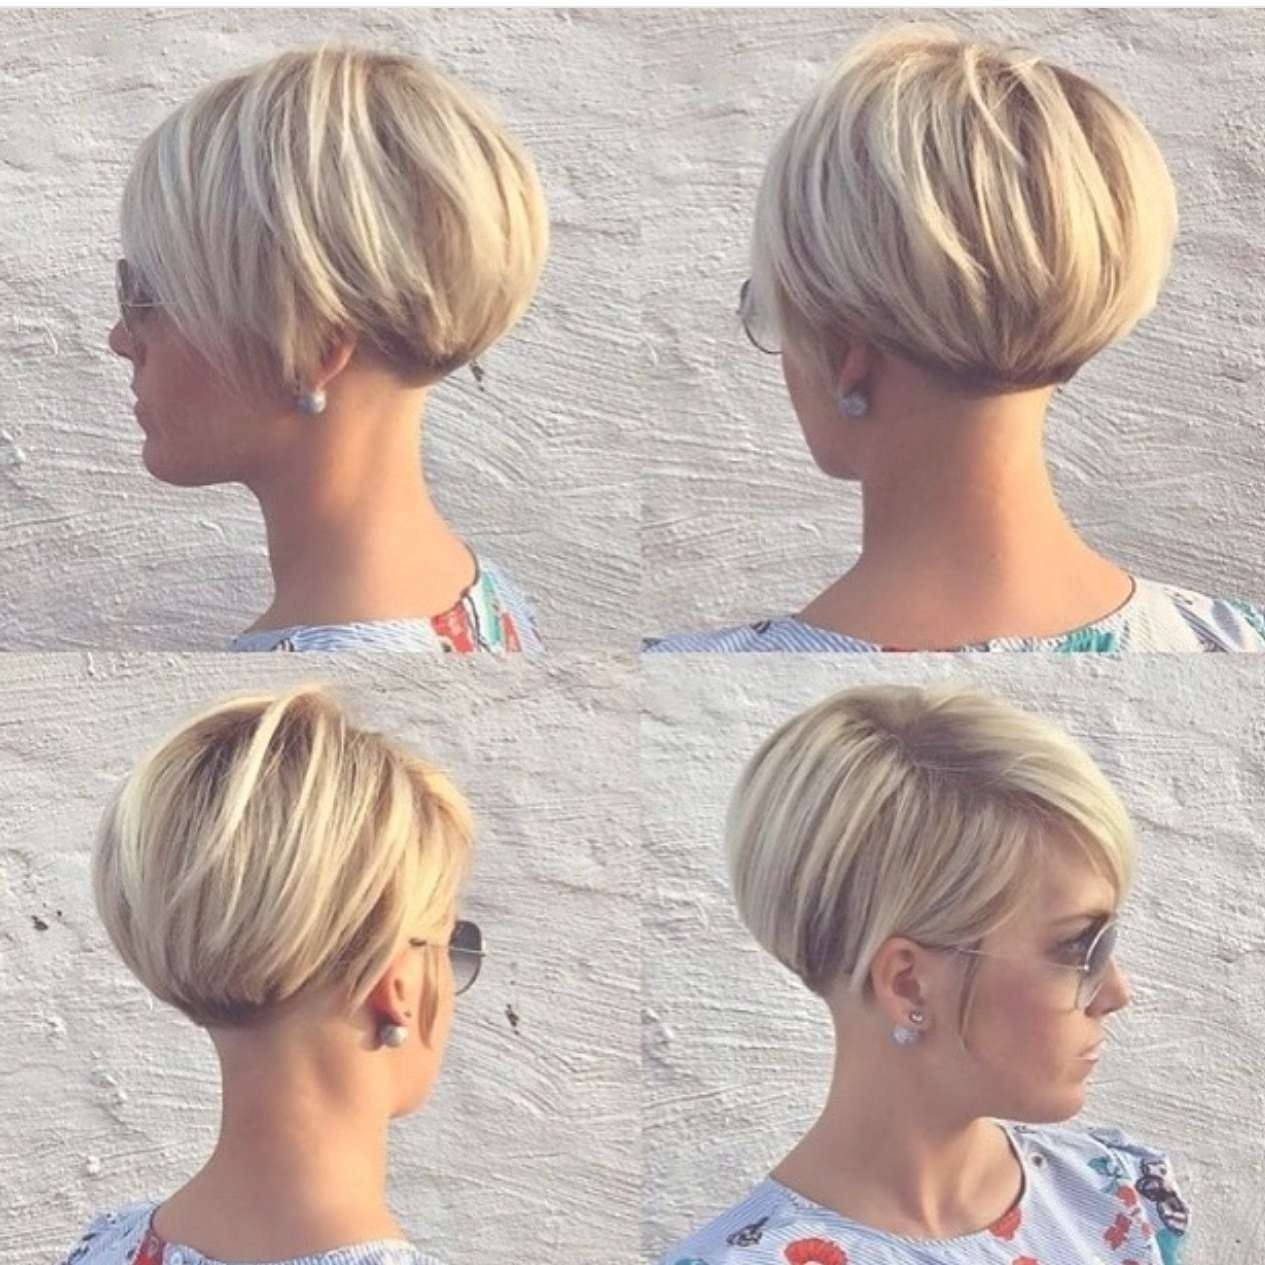 Fa3587D5D80A3610F6F20A82E4Bba5B6 (1265×1265)   Haircuts With Regard To Newest Bob Pixie Hairstyles (View 8 of 12)